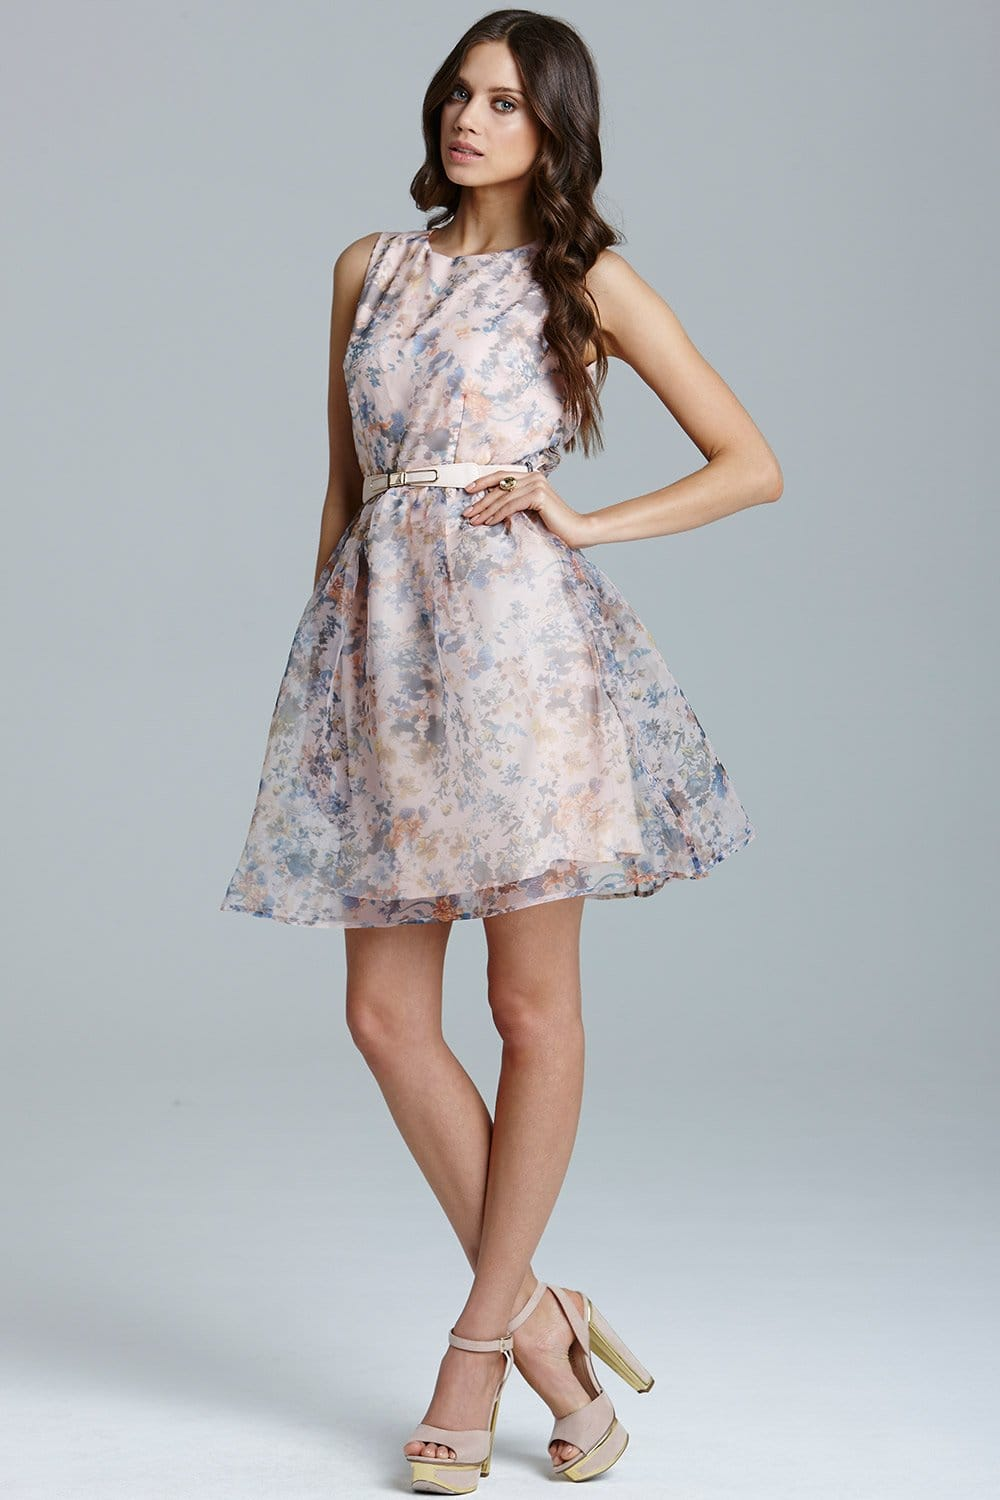 Floral Organza Prom Dress From Little Mistress Uk